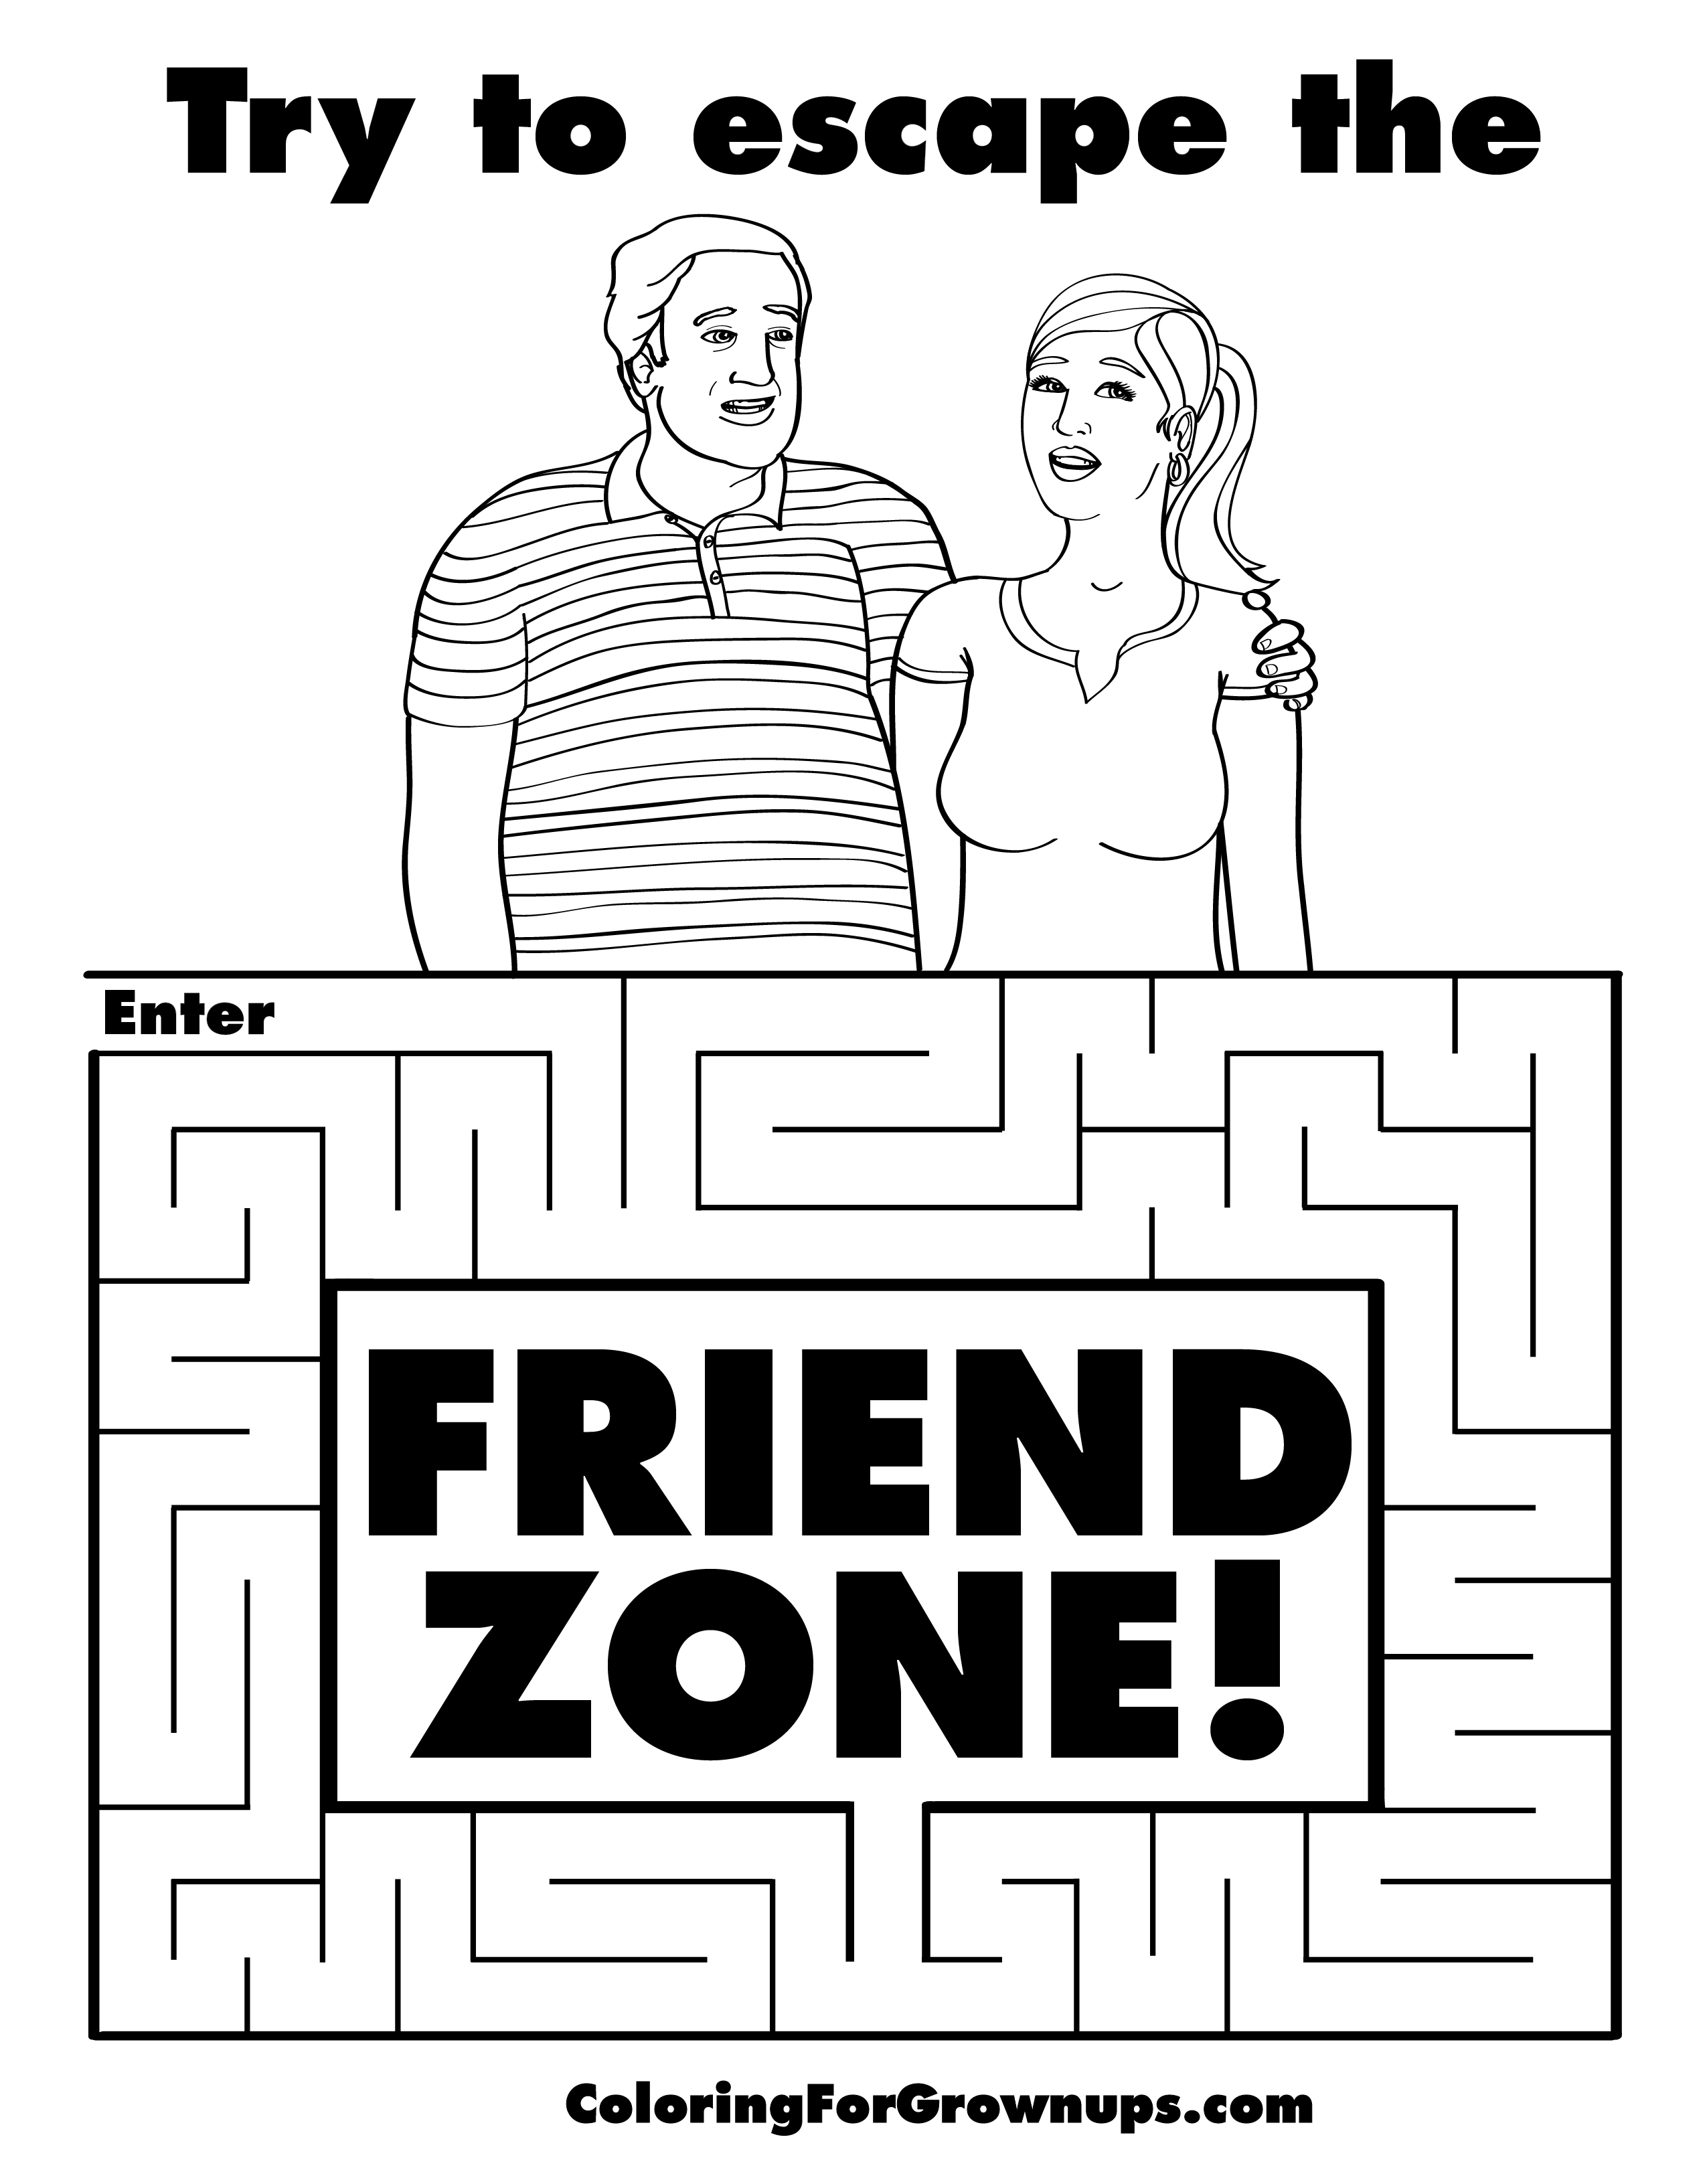 Relationships and Friend zone | Podium.me on acast